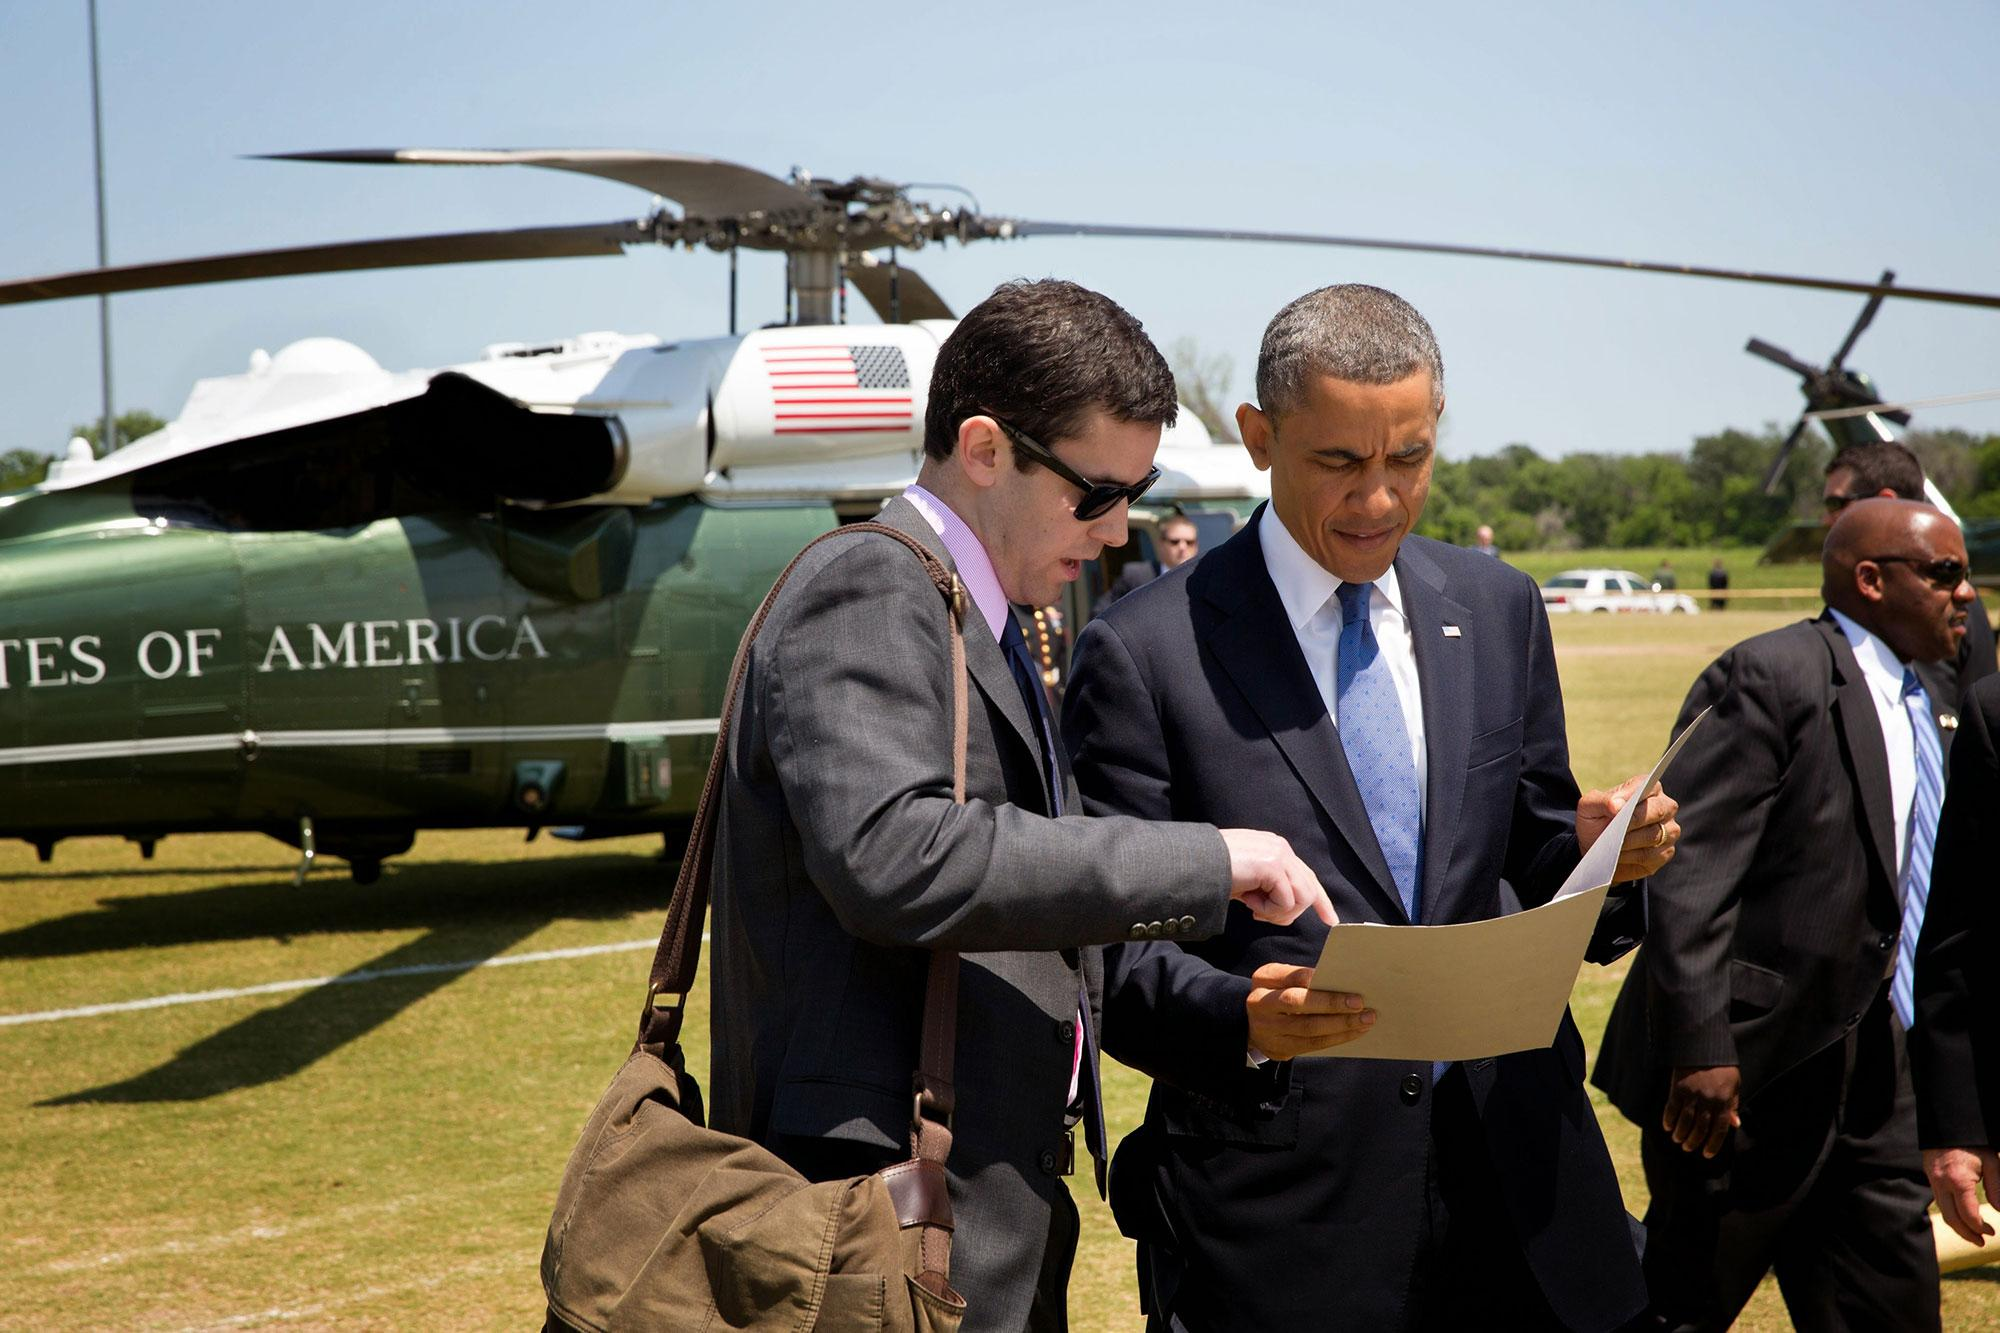 Kyle O'Connor discusses speech details with Obama as the president exits Marine One. (Photo by Pete Souza, Chief White House Photographer)